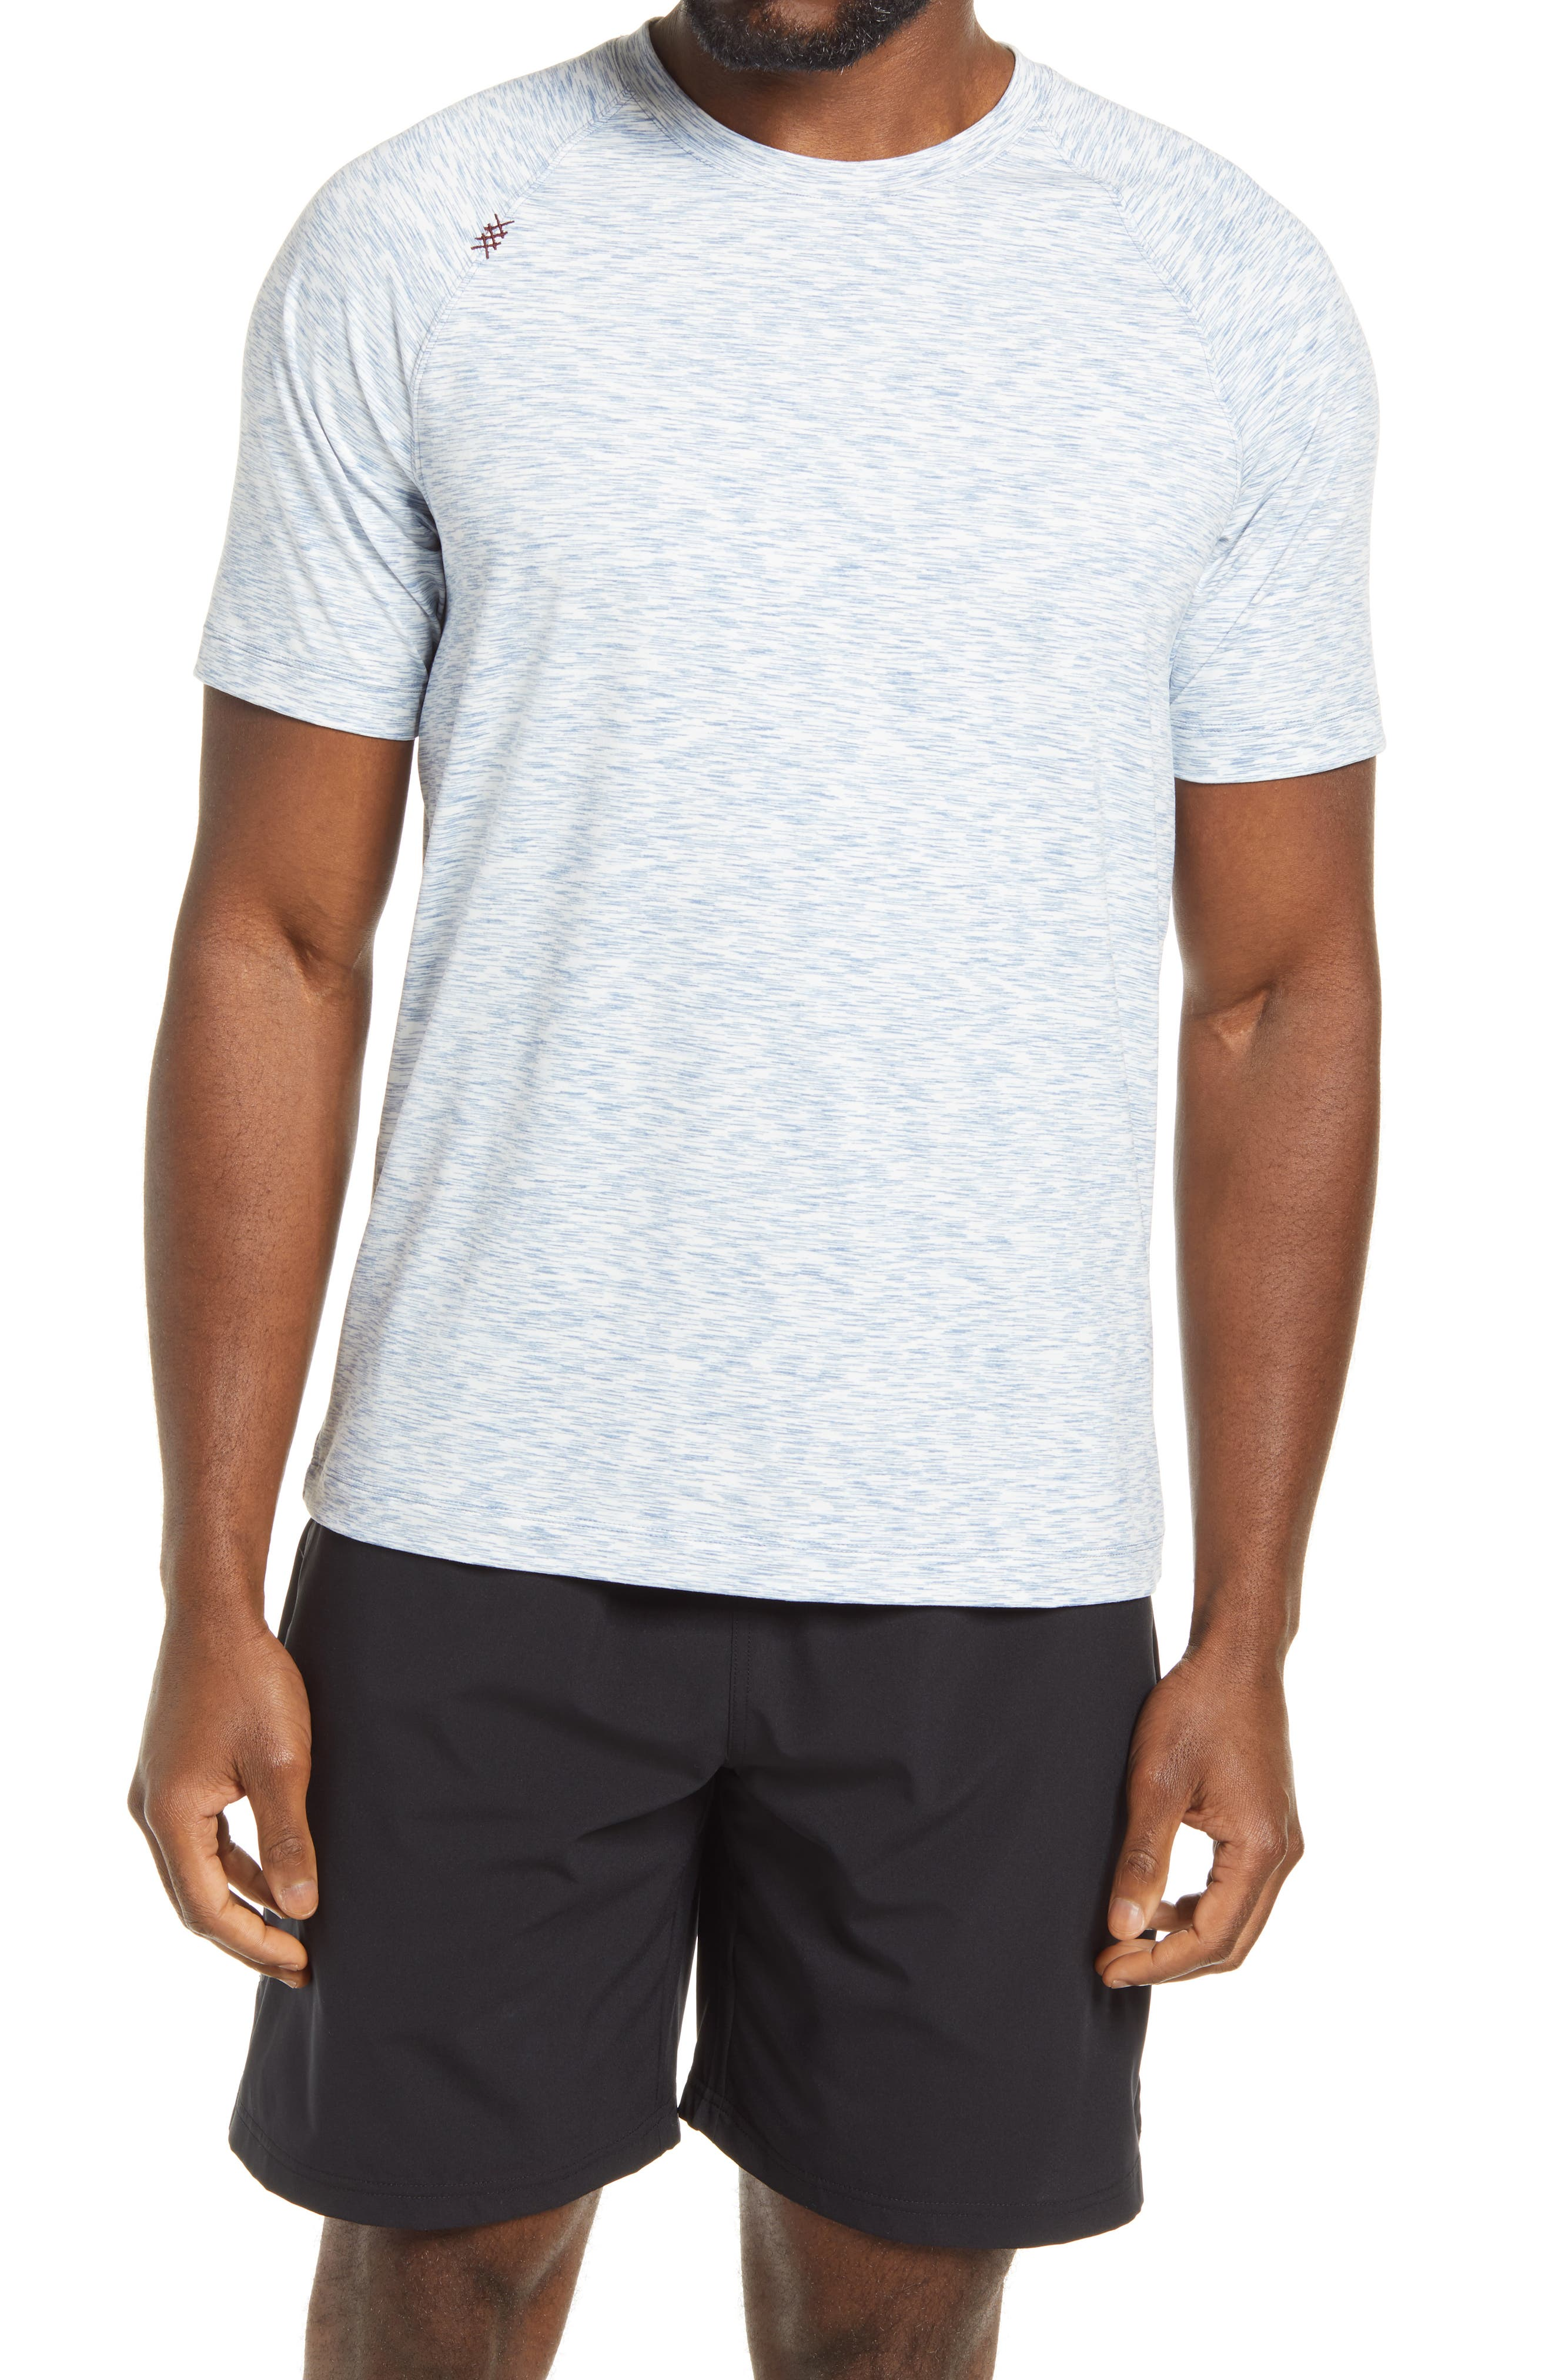 Stretchy, moisture-wicking fabric keeps up with you at any intensity in a T-shirt sporting roomy raglan sleeves, added sun protection and essential odor control. Style Name: Rhone Reign Performance T-Shirt. Style Number: 6095344. Available in stores.